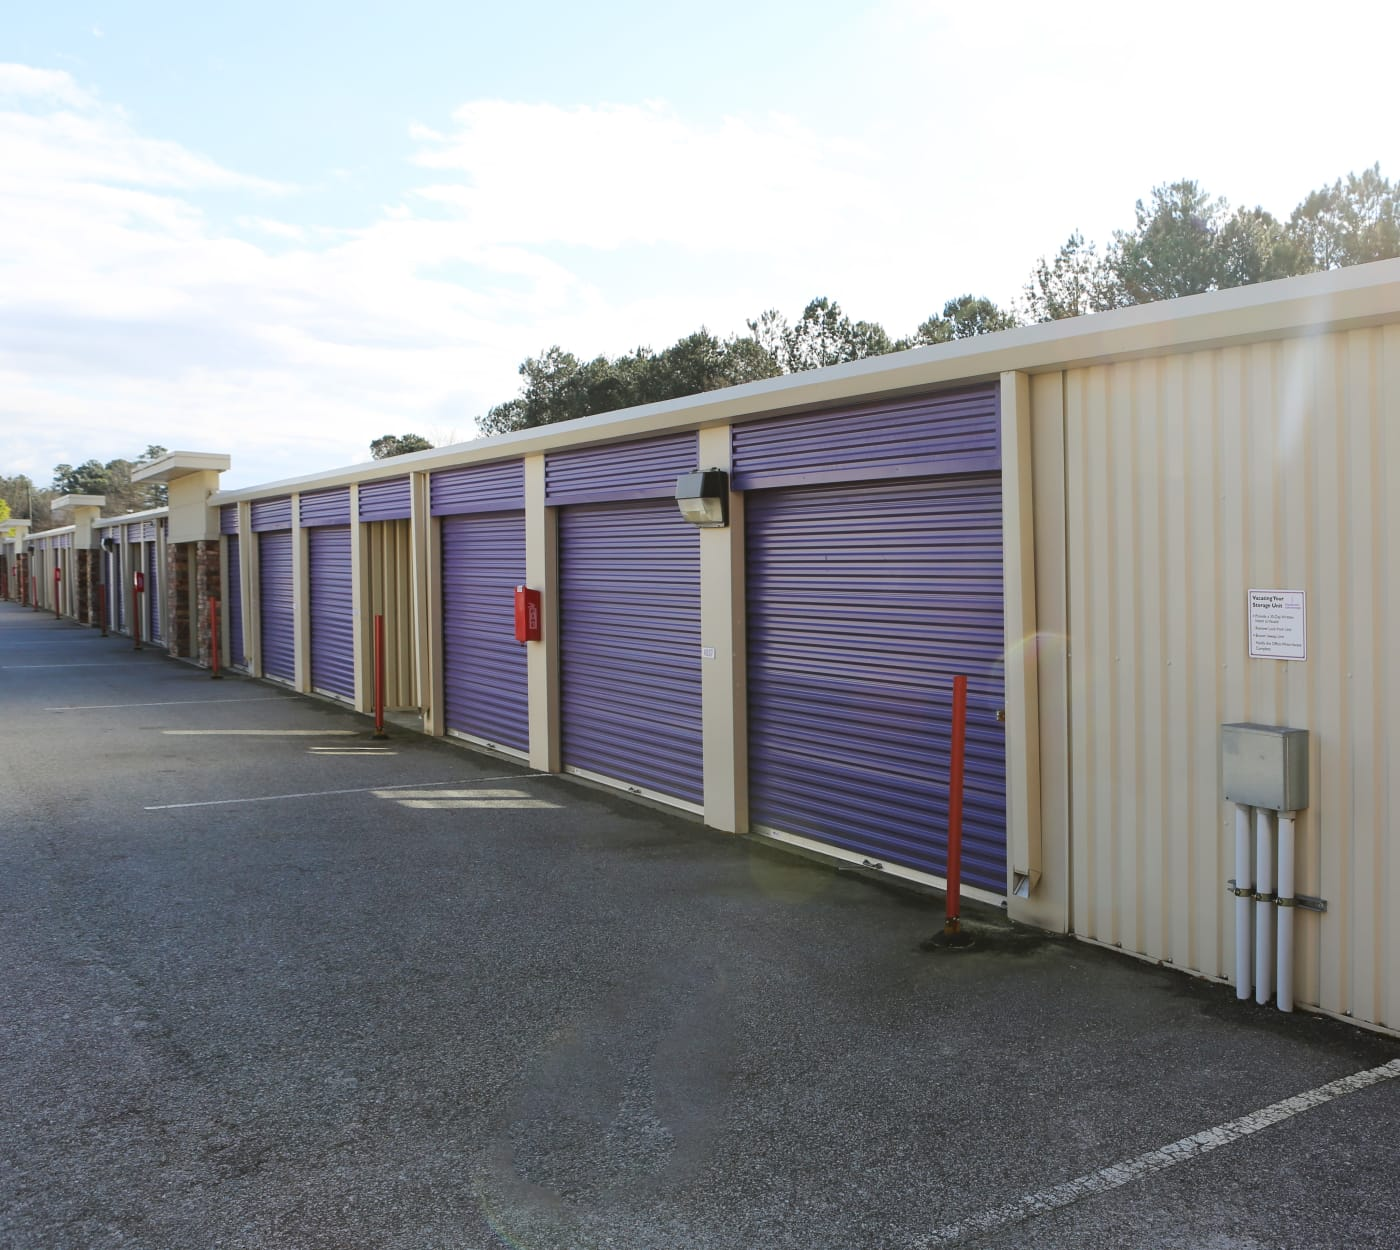 Ground-floor units at StoreSmart Self-Storage in Columbia, South Carolina